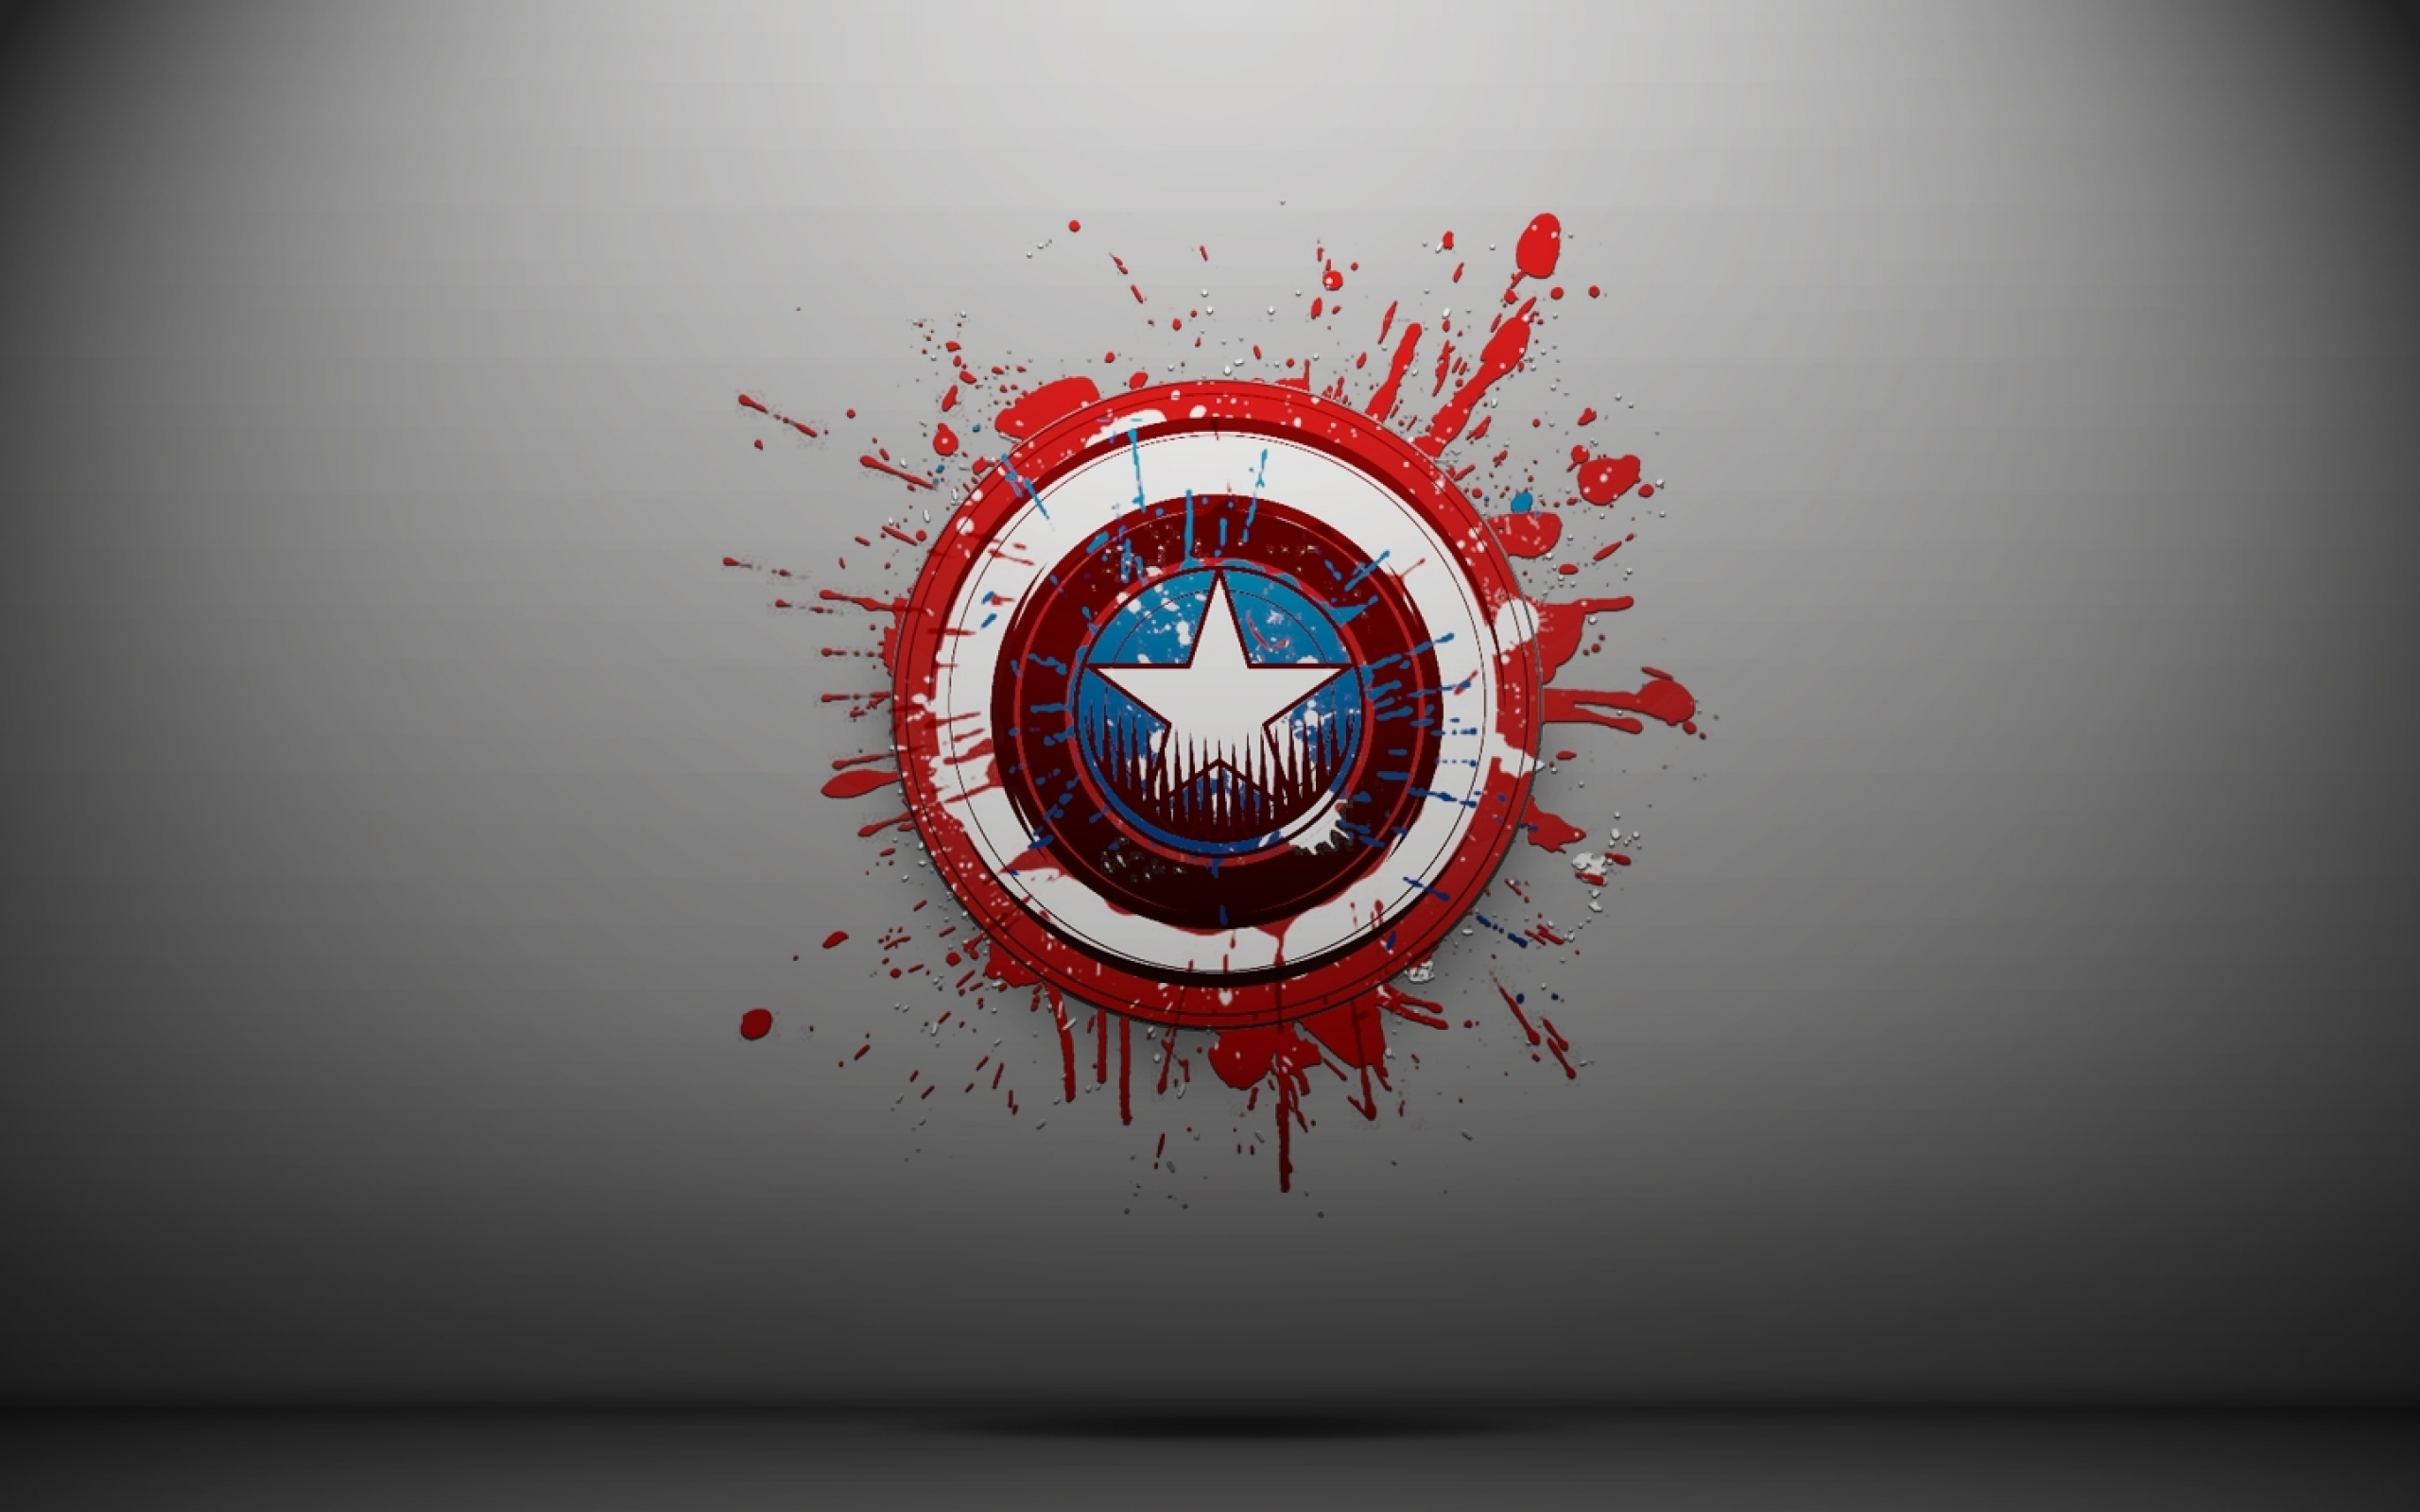 Captain america wallpapers page 2 - Captain america screensaver download ...